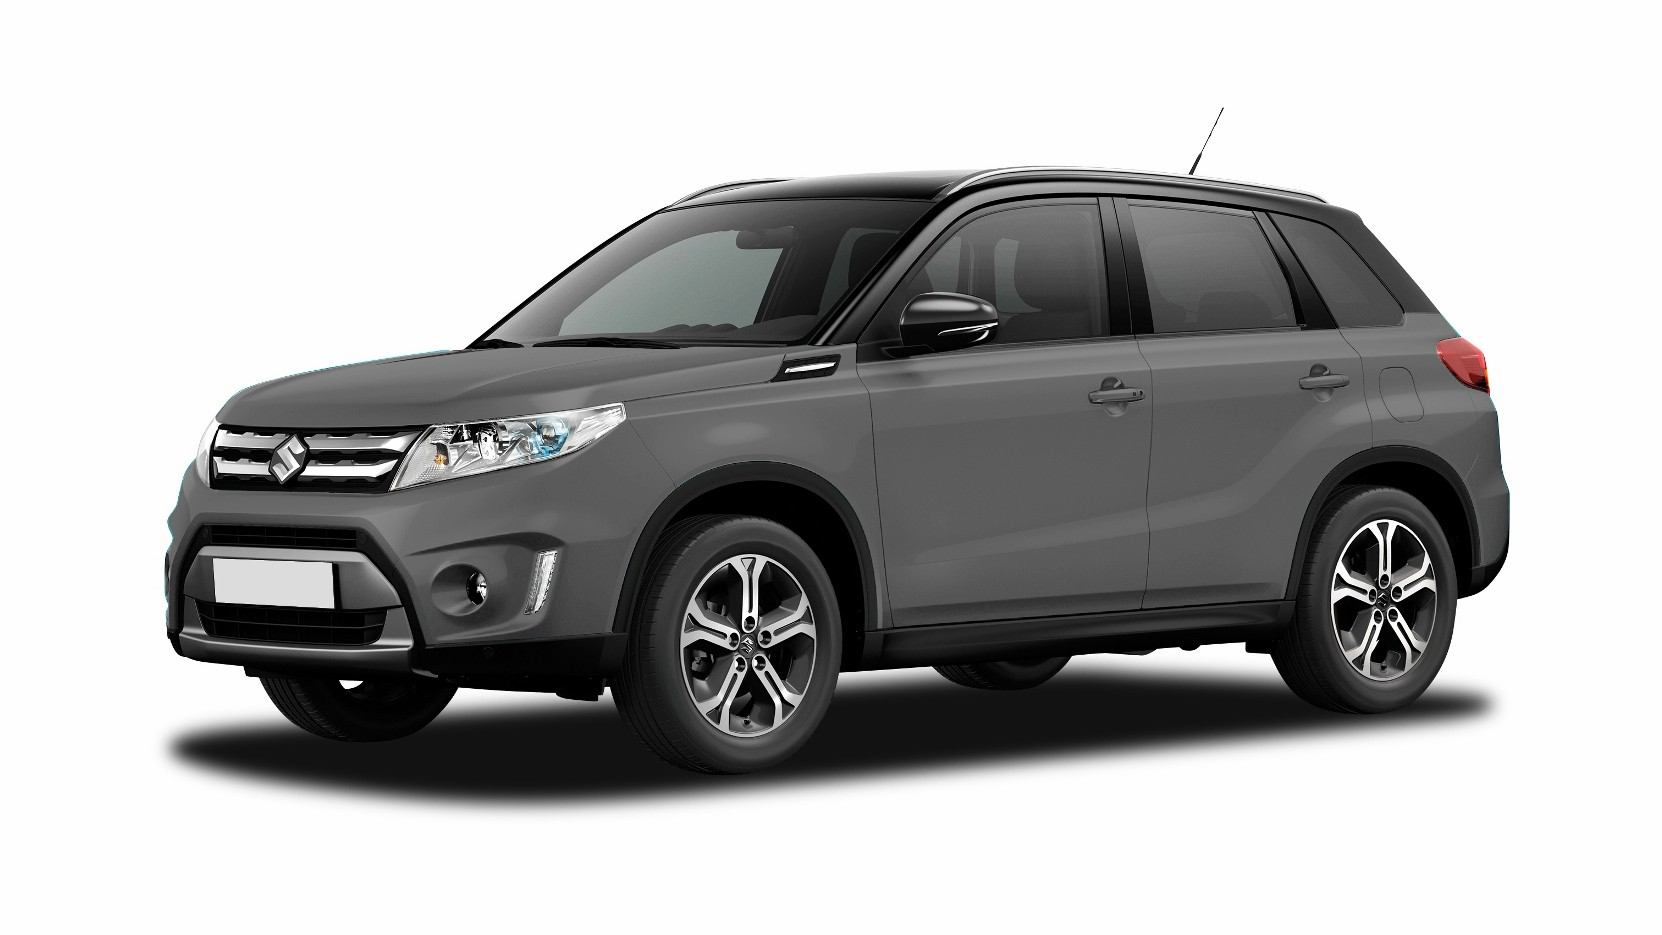 voiture suzuki vitara 1 6 ddis pack toit panoramique occasion diesel 2016 10 km 20790. Black Bedroom Furniture Sets. Home Design Ideas